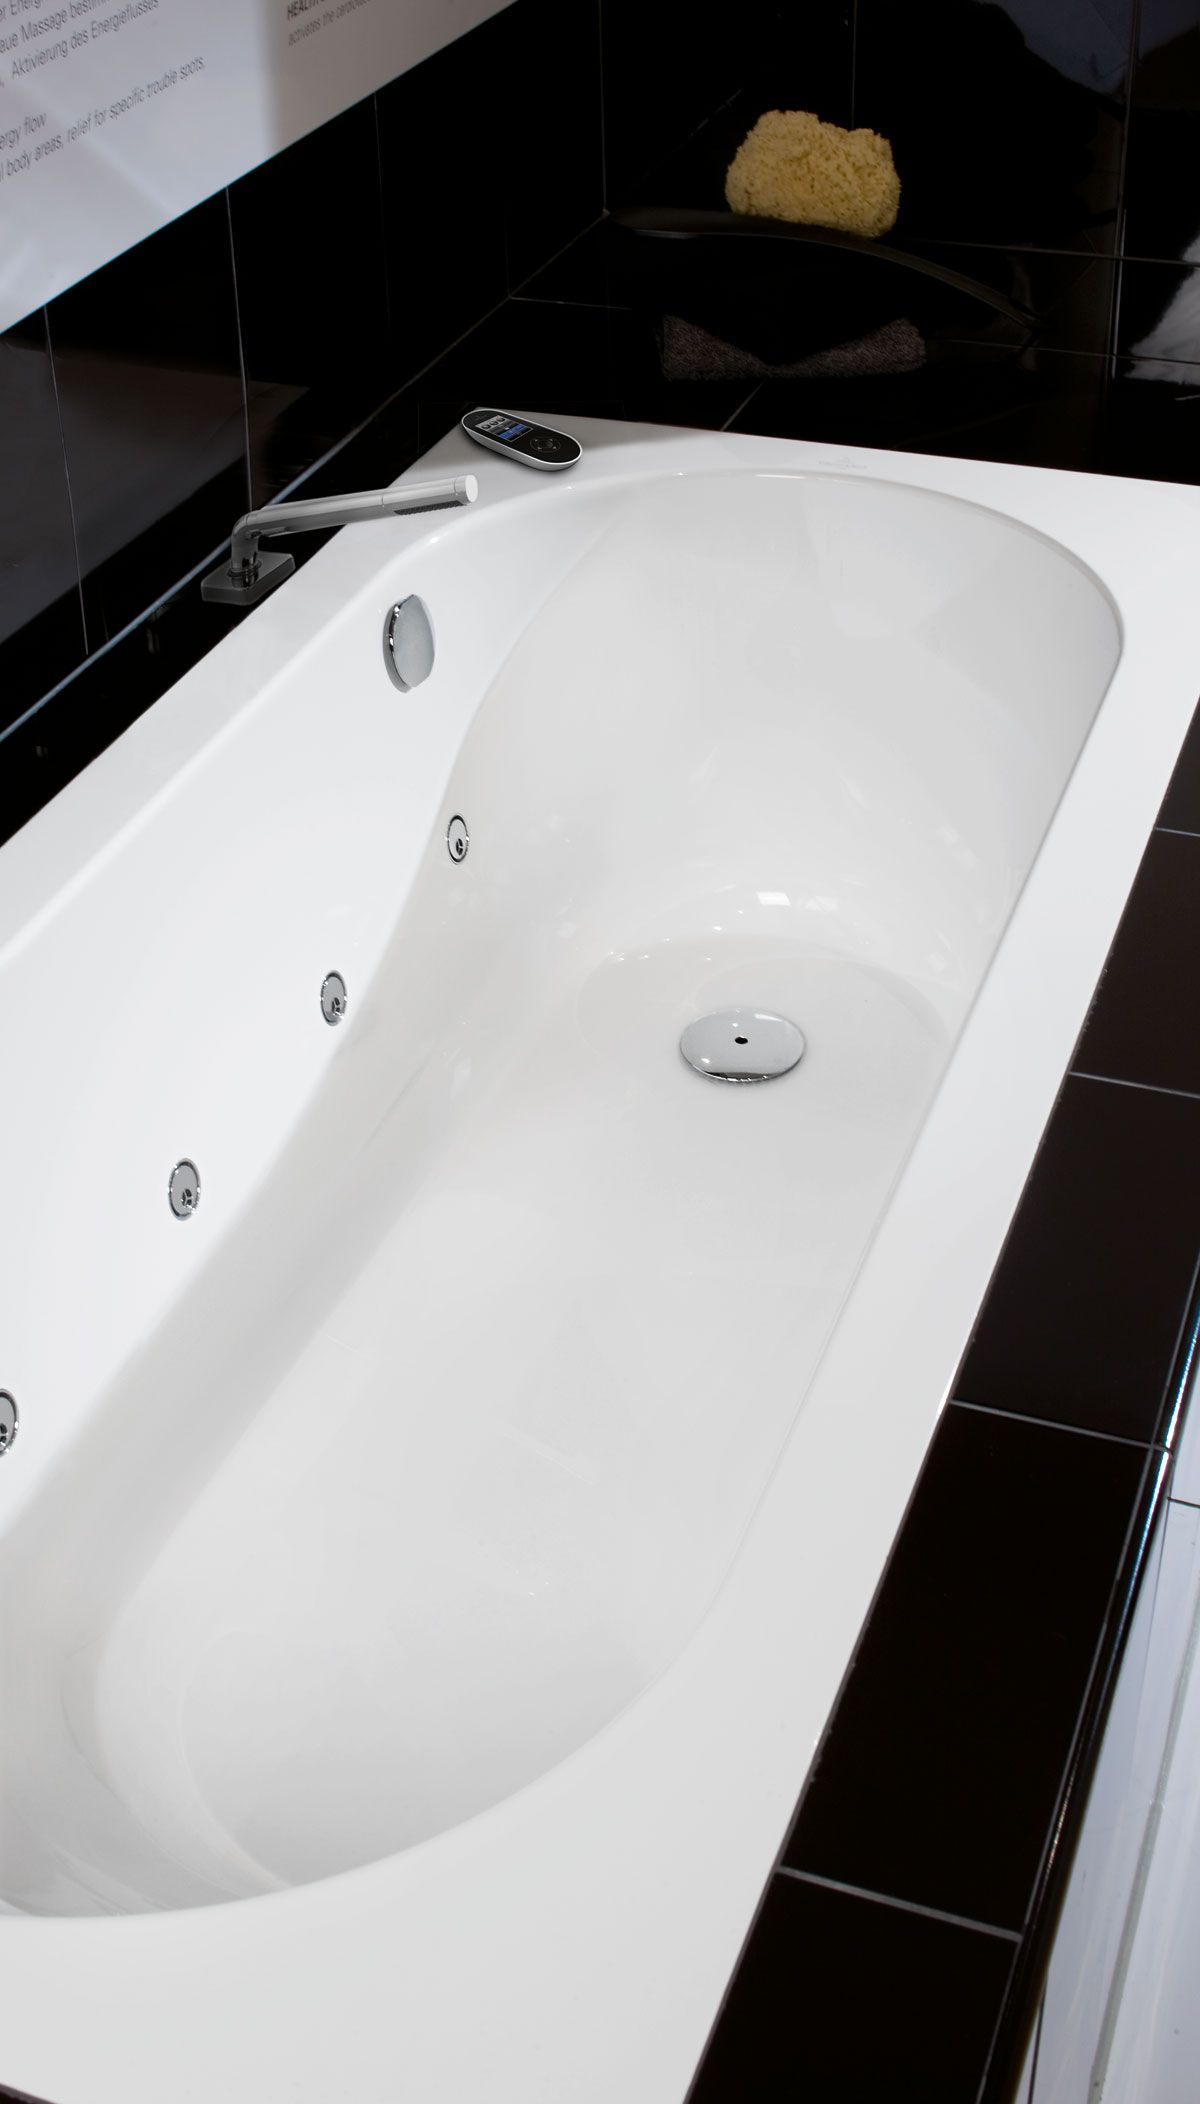 Villeroy and boch bathroom sink - Villeroy Boch System Whirlpool Bath